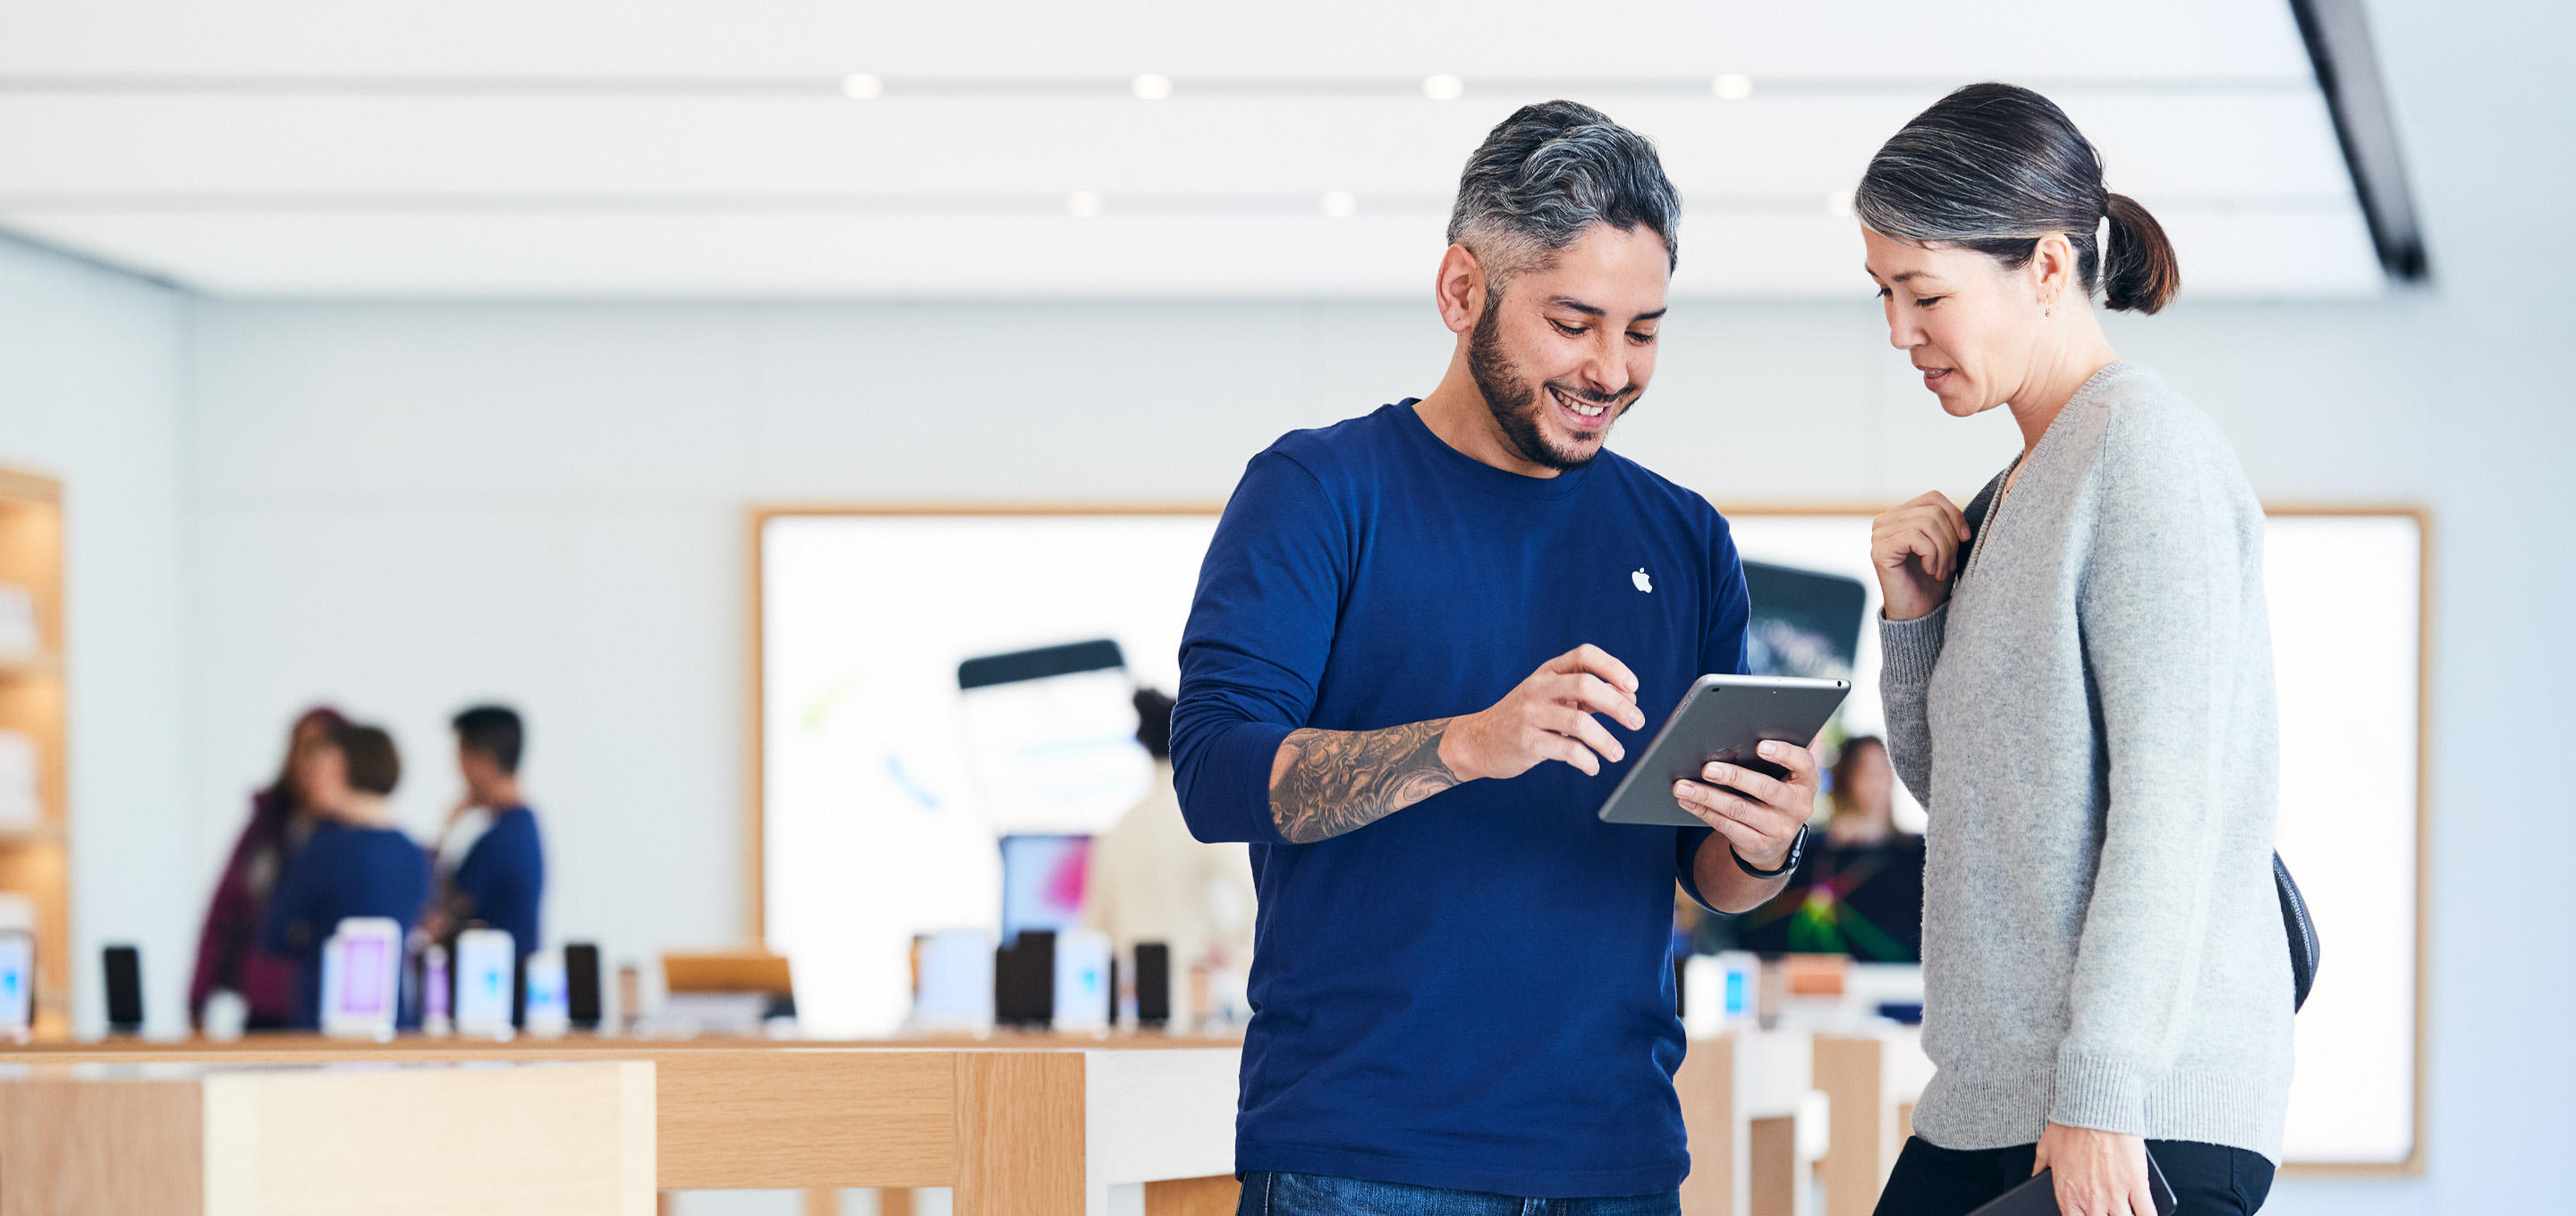 An Apple Store employee shows a customer the features of iPad